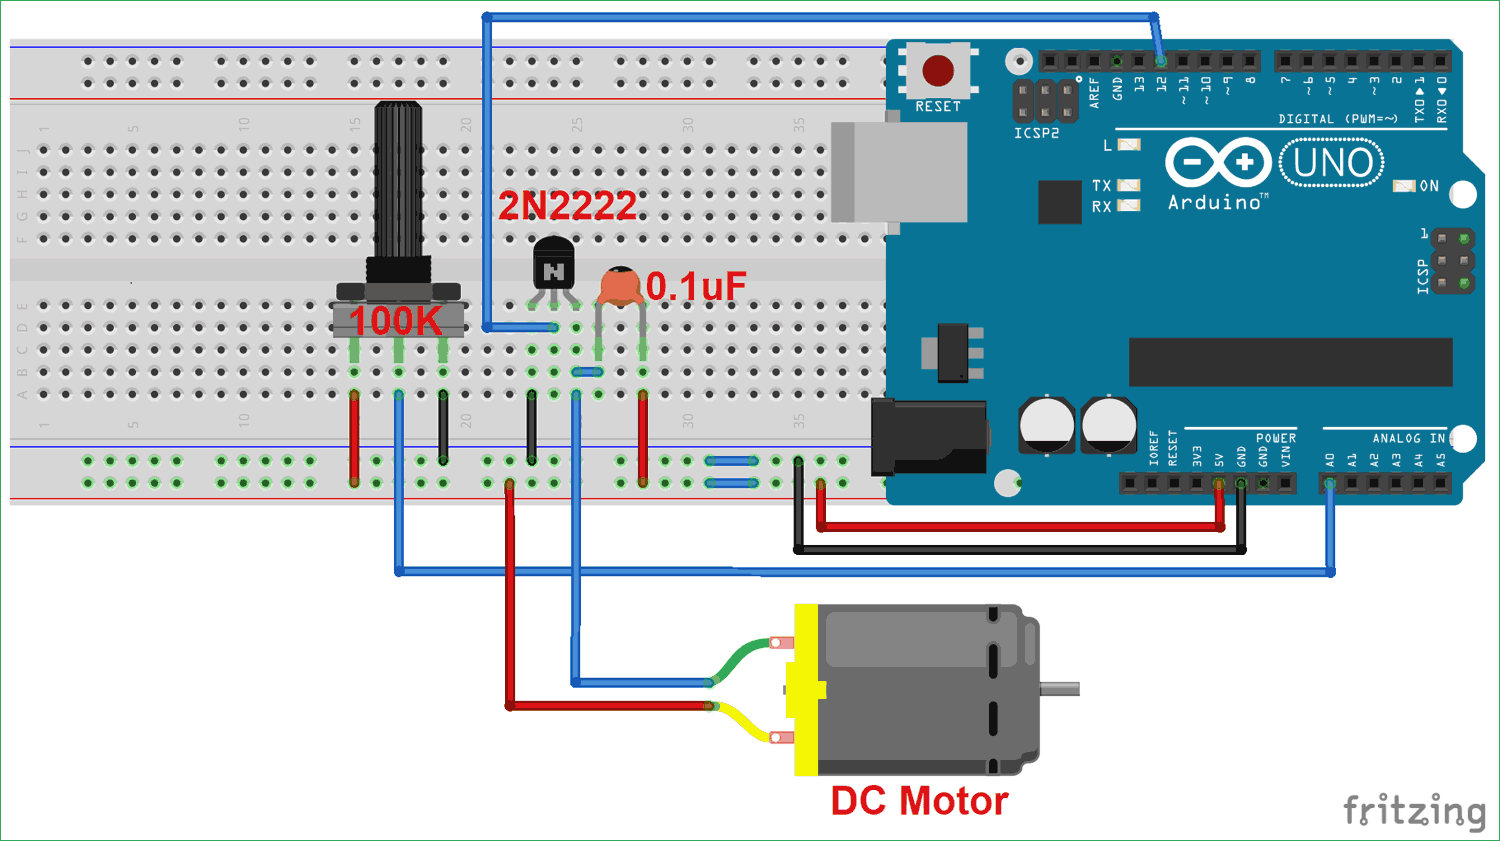 Wiring Diagram Remote Potentiometer - Wiring Diagram Page